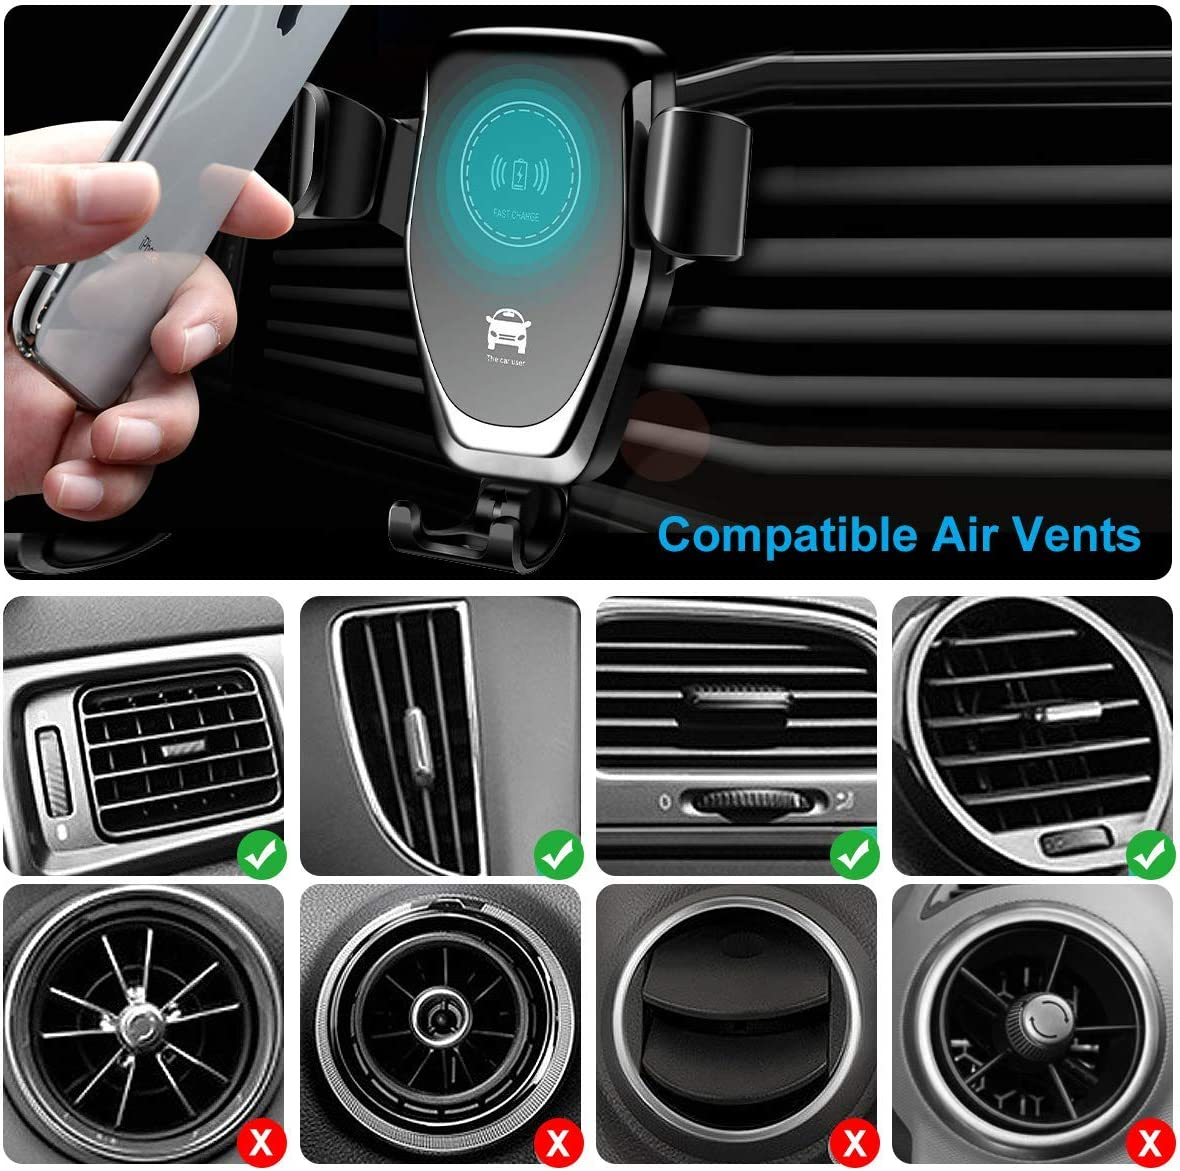 Black Samsung S10//S10+//S9//S9+//S8//S8+,All Qi-Enabled Phones AHUTORU Wireless Car Charger,10W//7.5W Qi Fast Charging,Car Air Vent Mount Phone Holder Gravity,Compatible with iPhone Xs MAX//XS//XR//X//8//8+